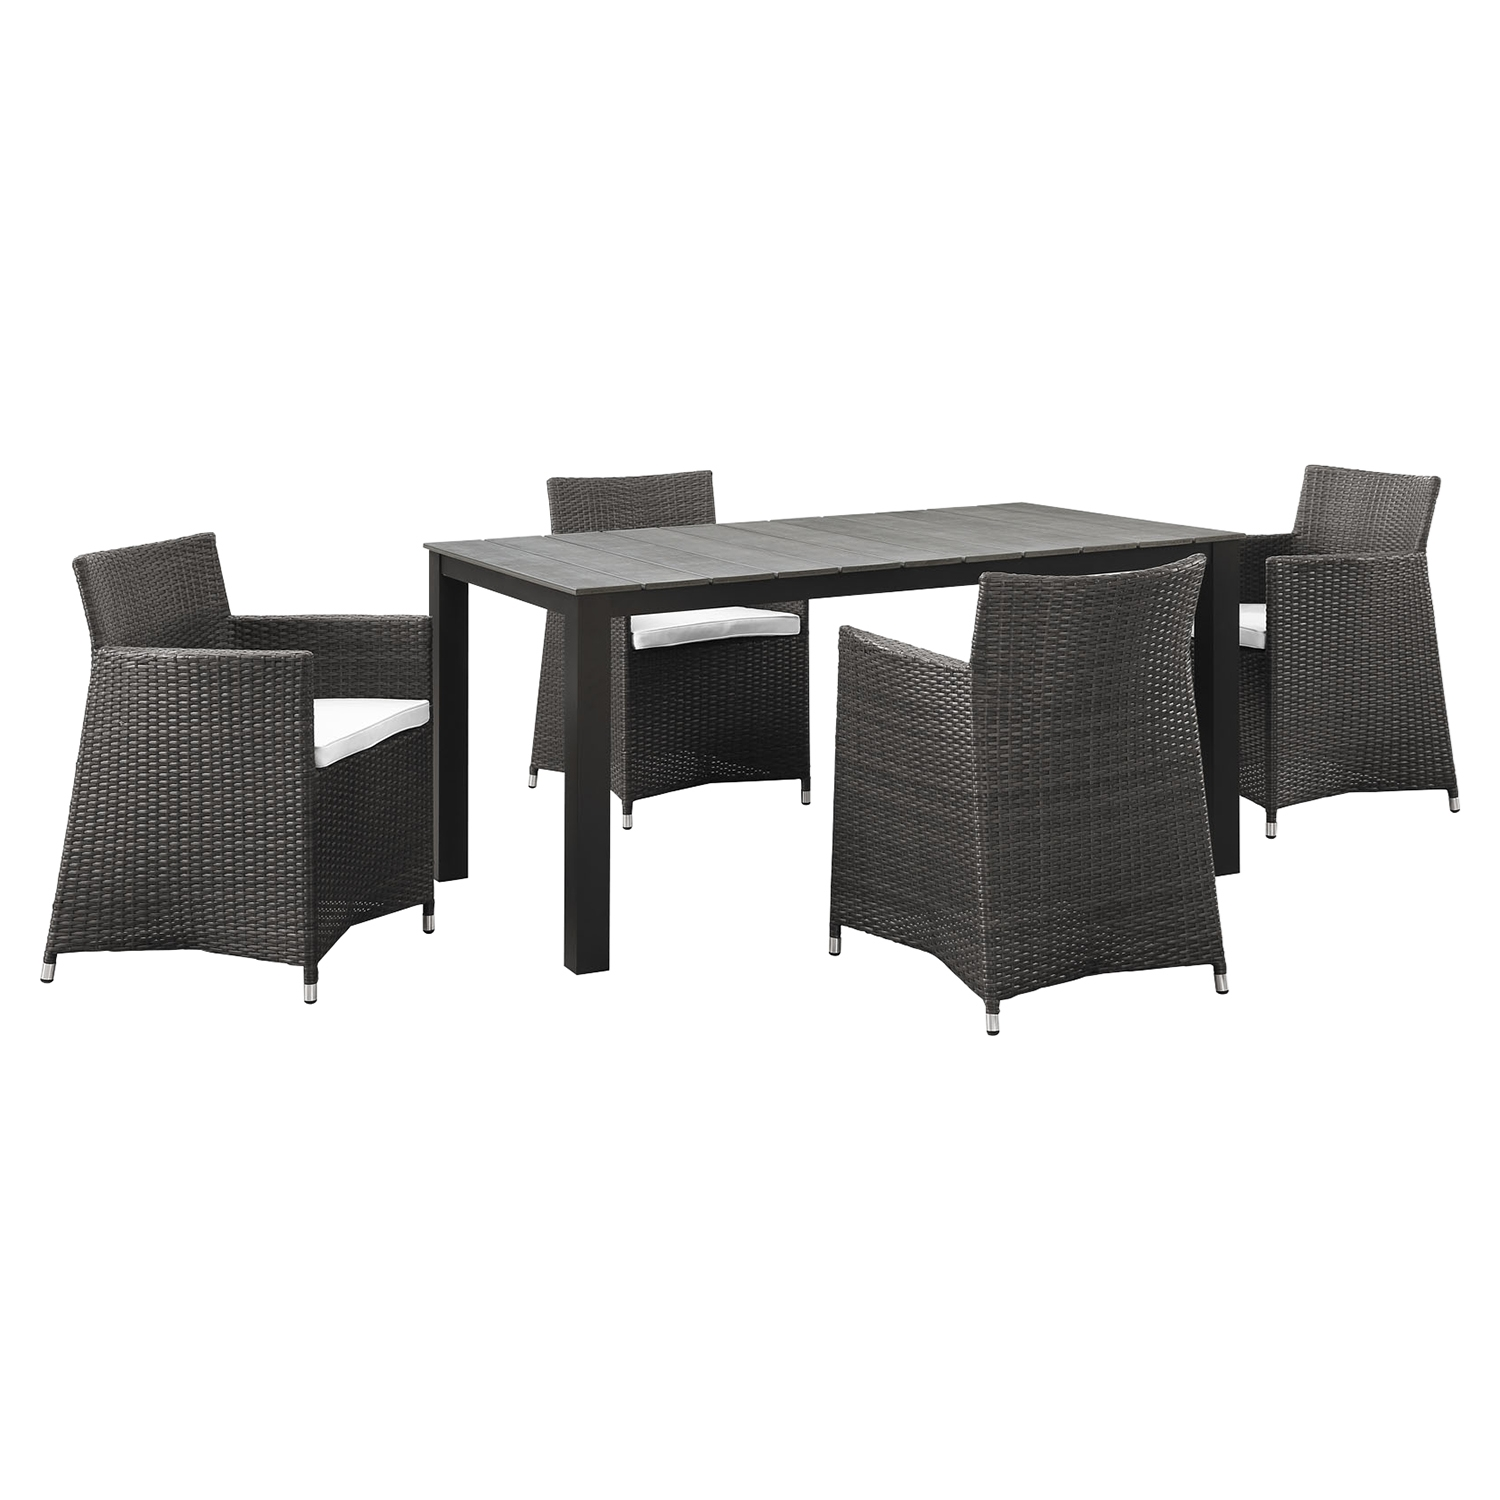 "Junction 5 Pieces 63"" Outdoor Patio Set - Brown Frame, White Cushion - EEI-1746-BRN-WHI-SET"